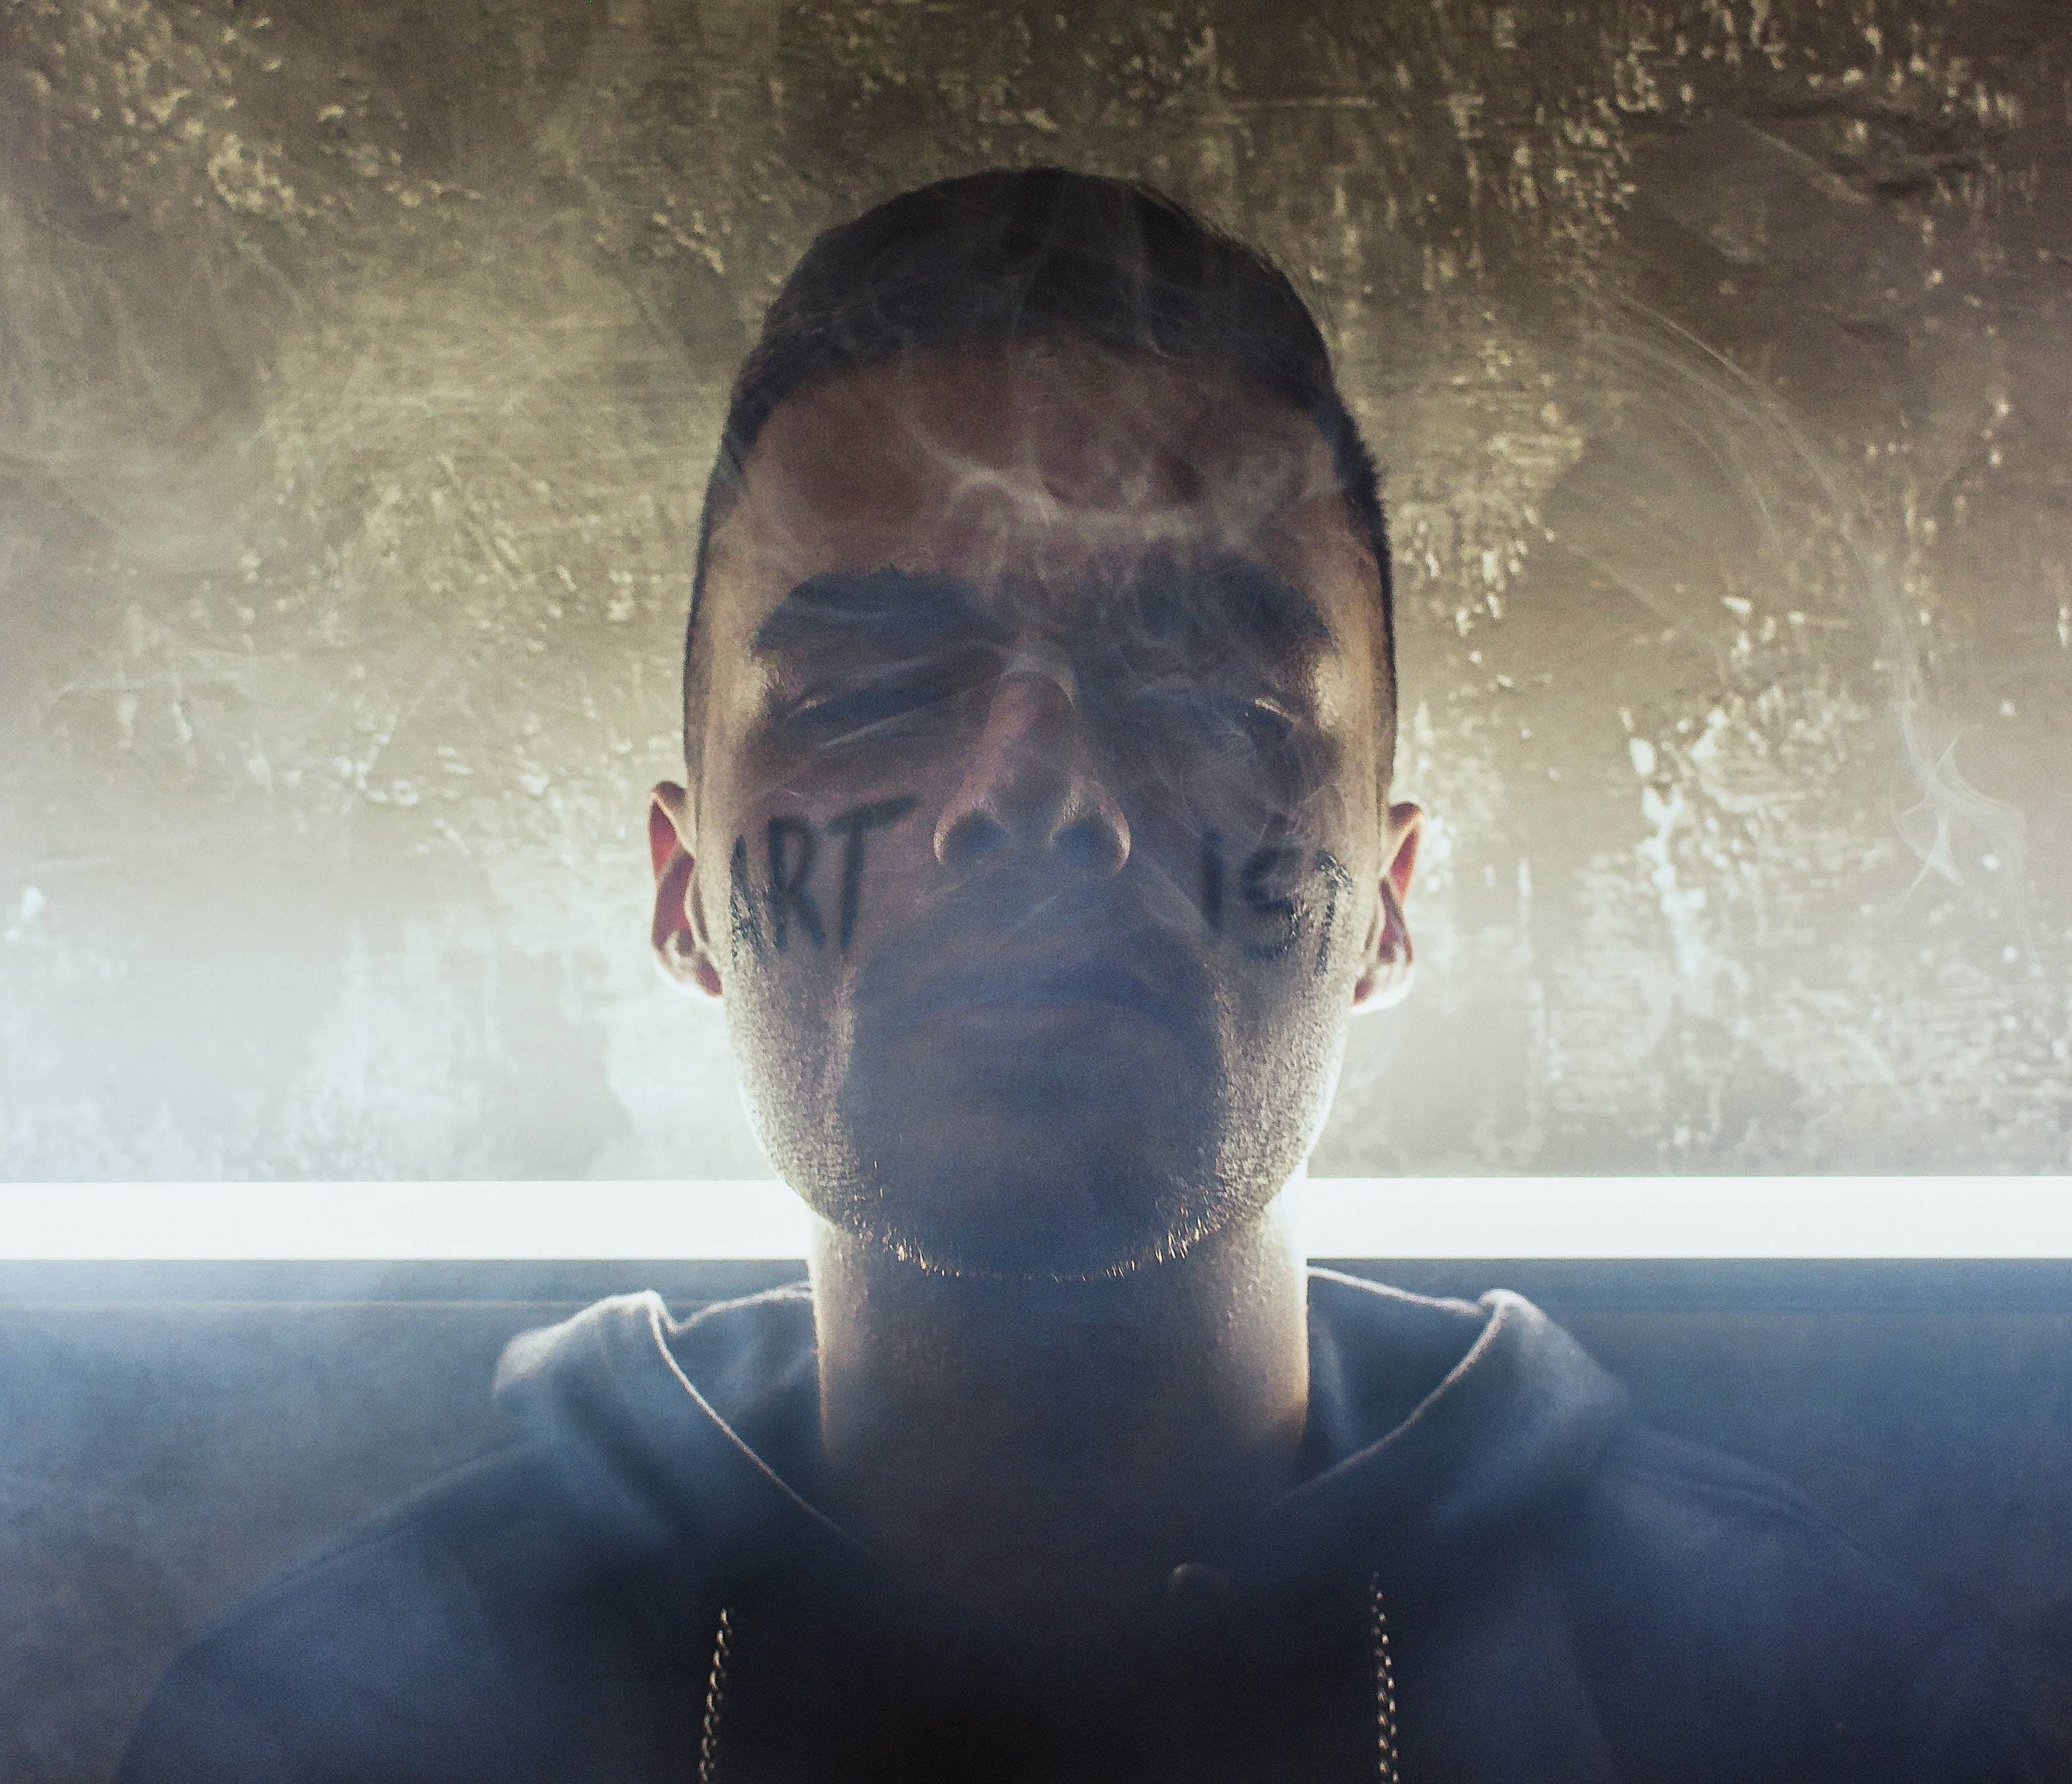 photo of a person with ARTIST written on his face